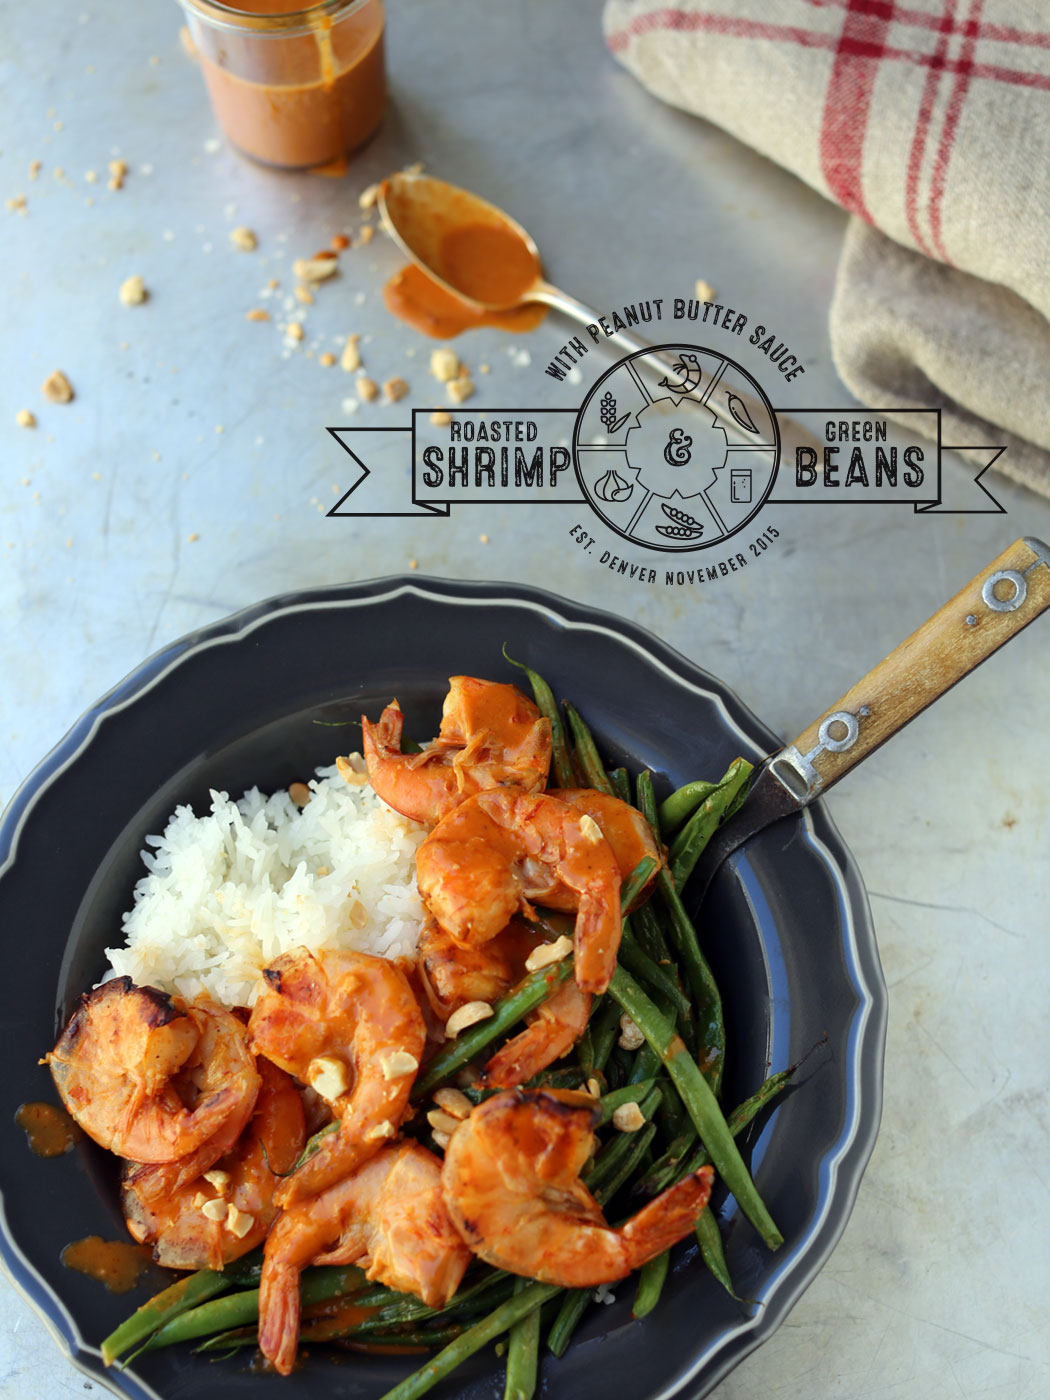 Roasted Shrimp and Green Beans with Peanut Butter Sauce